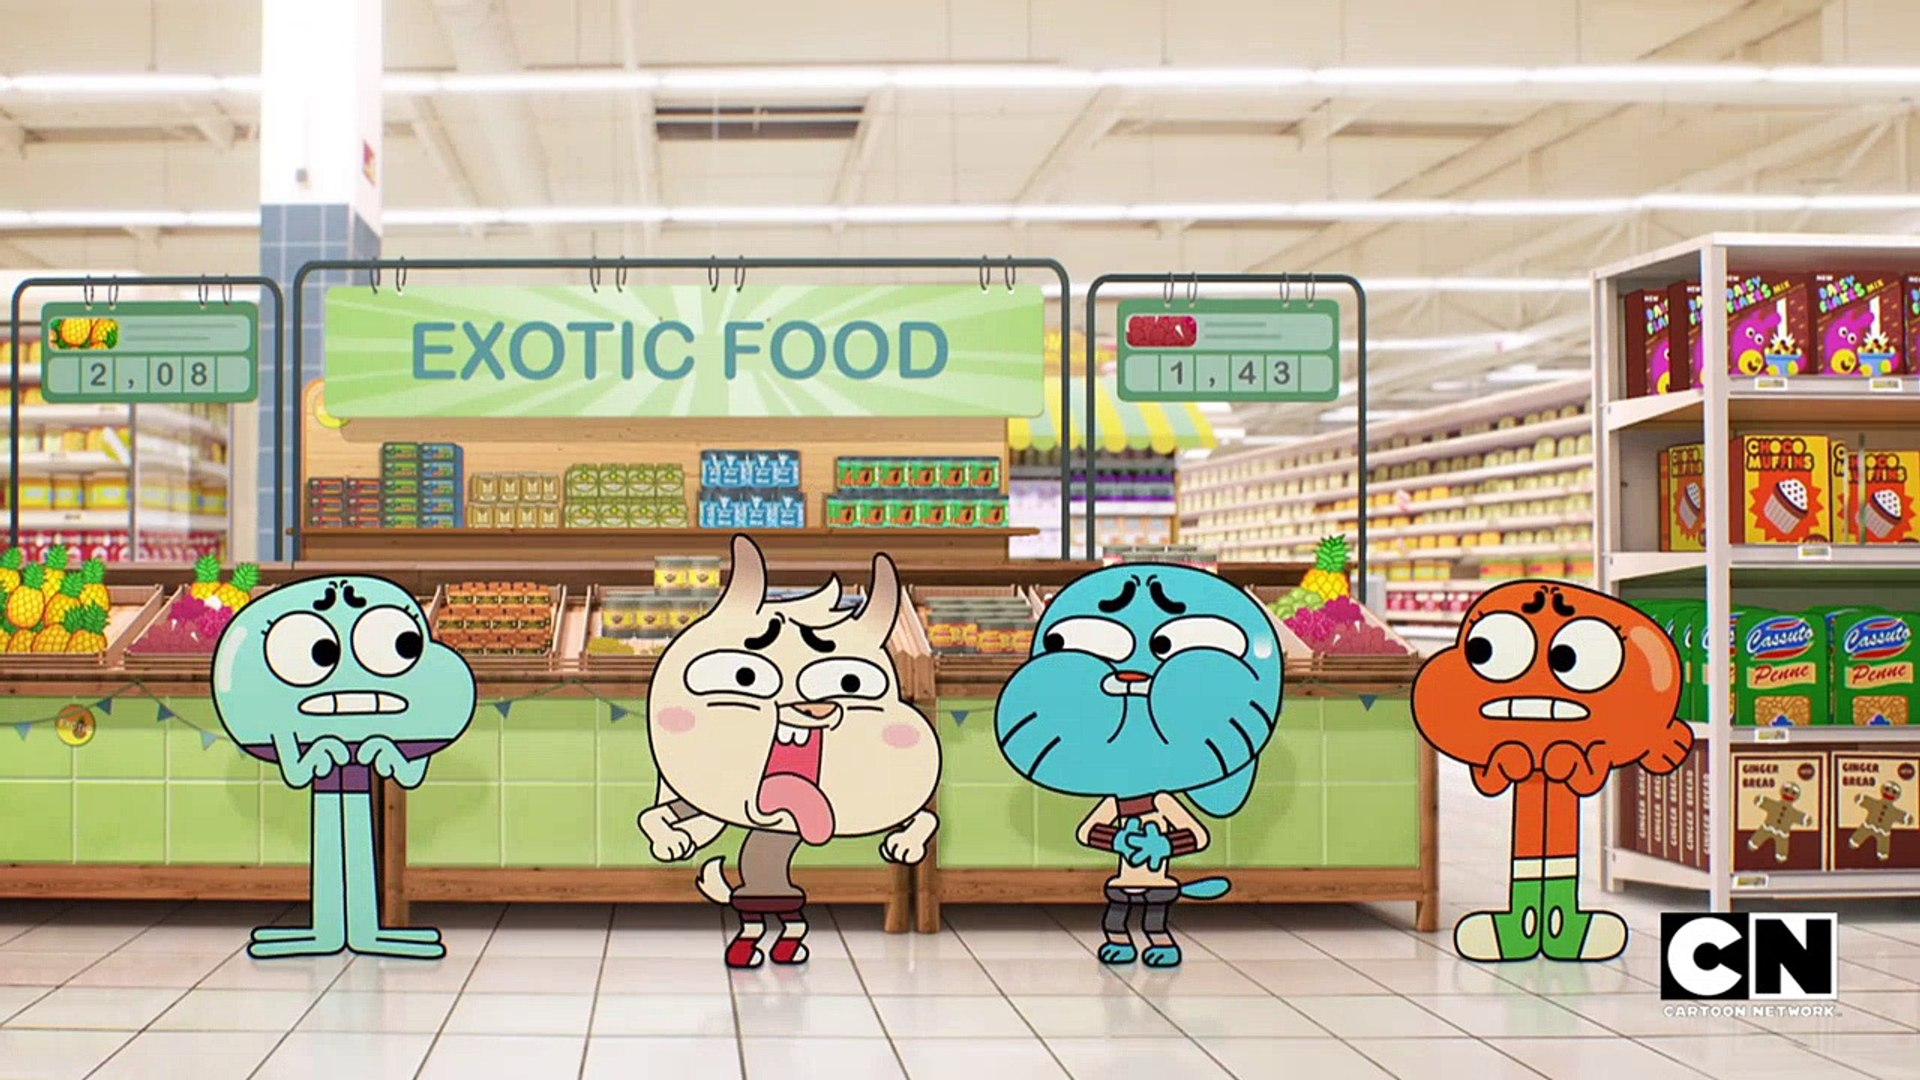 TAWOG - The Copycats